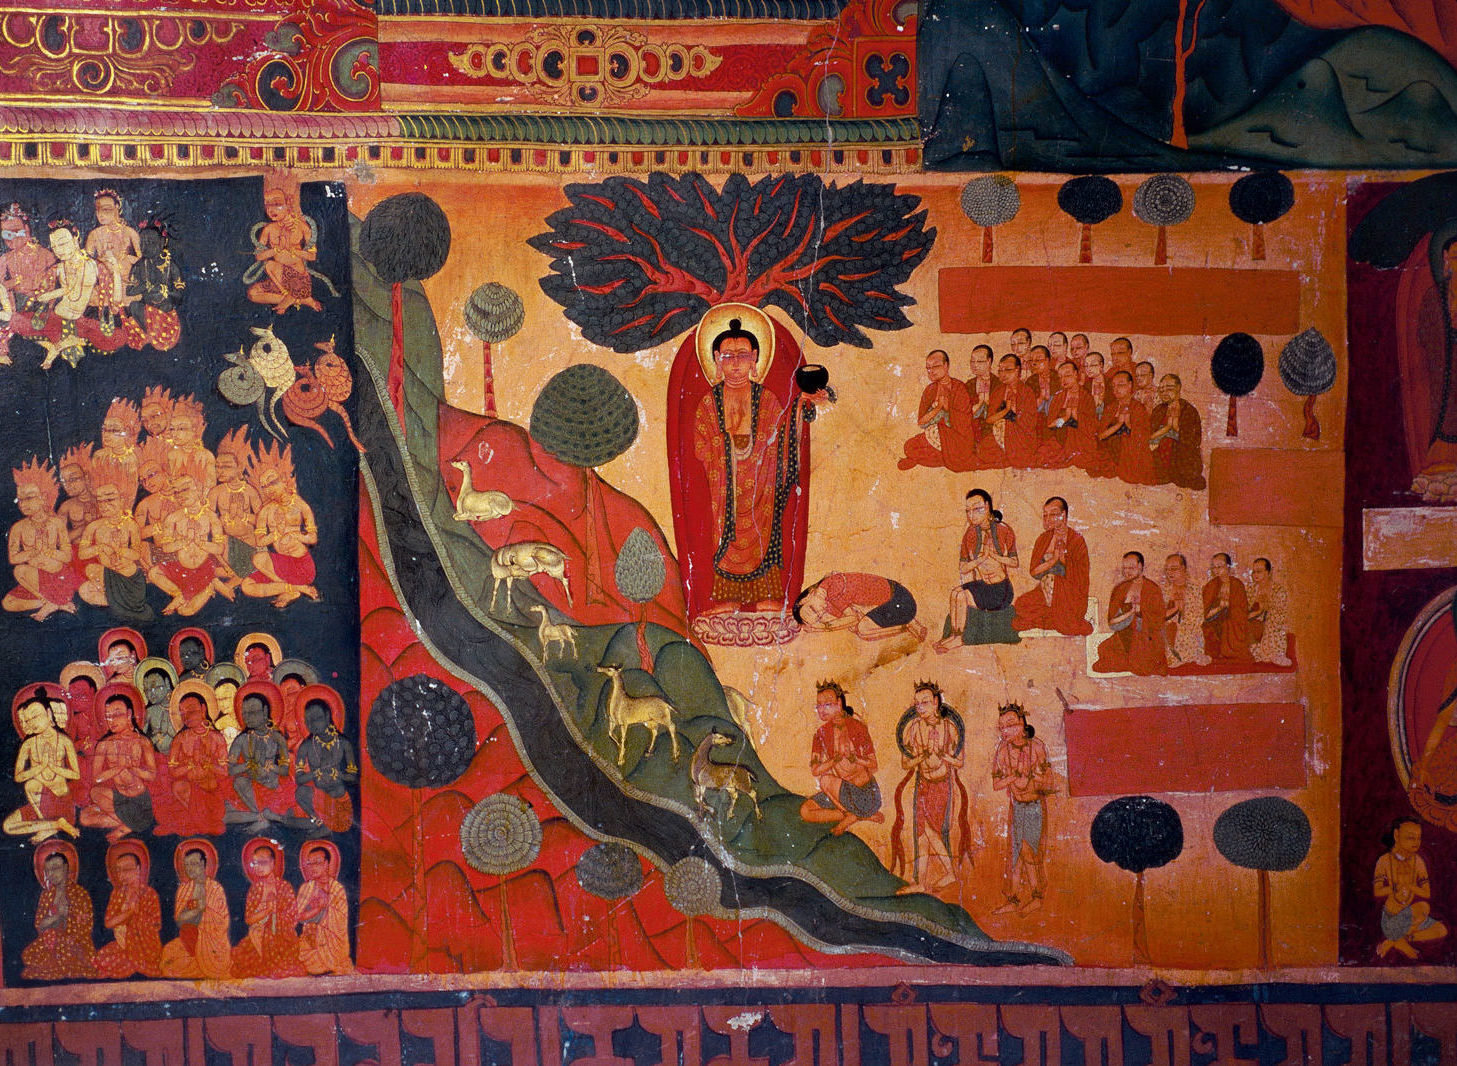 Painting showing the story of the Conversion of the Householder Yasa, who became a mendicant and was established as an Arhat, in the Red Temple in Tsparang, Guge, 1436-1449 (?)